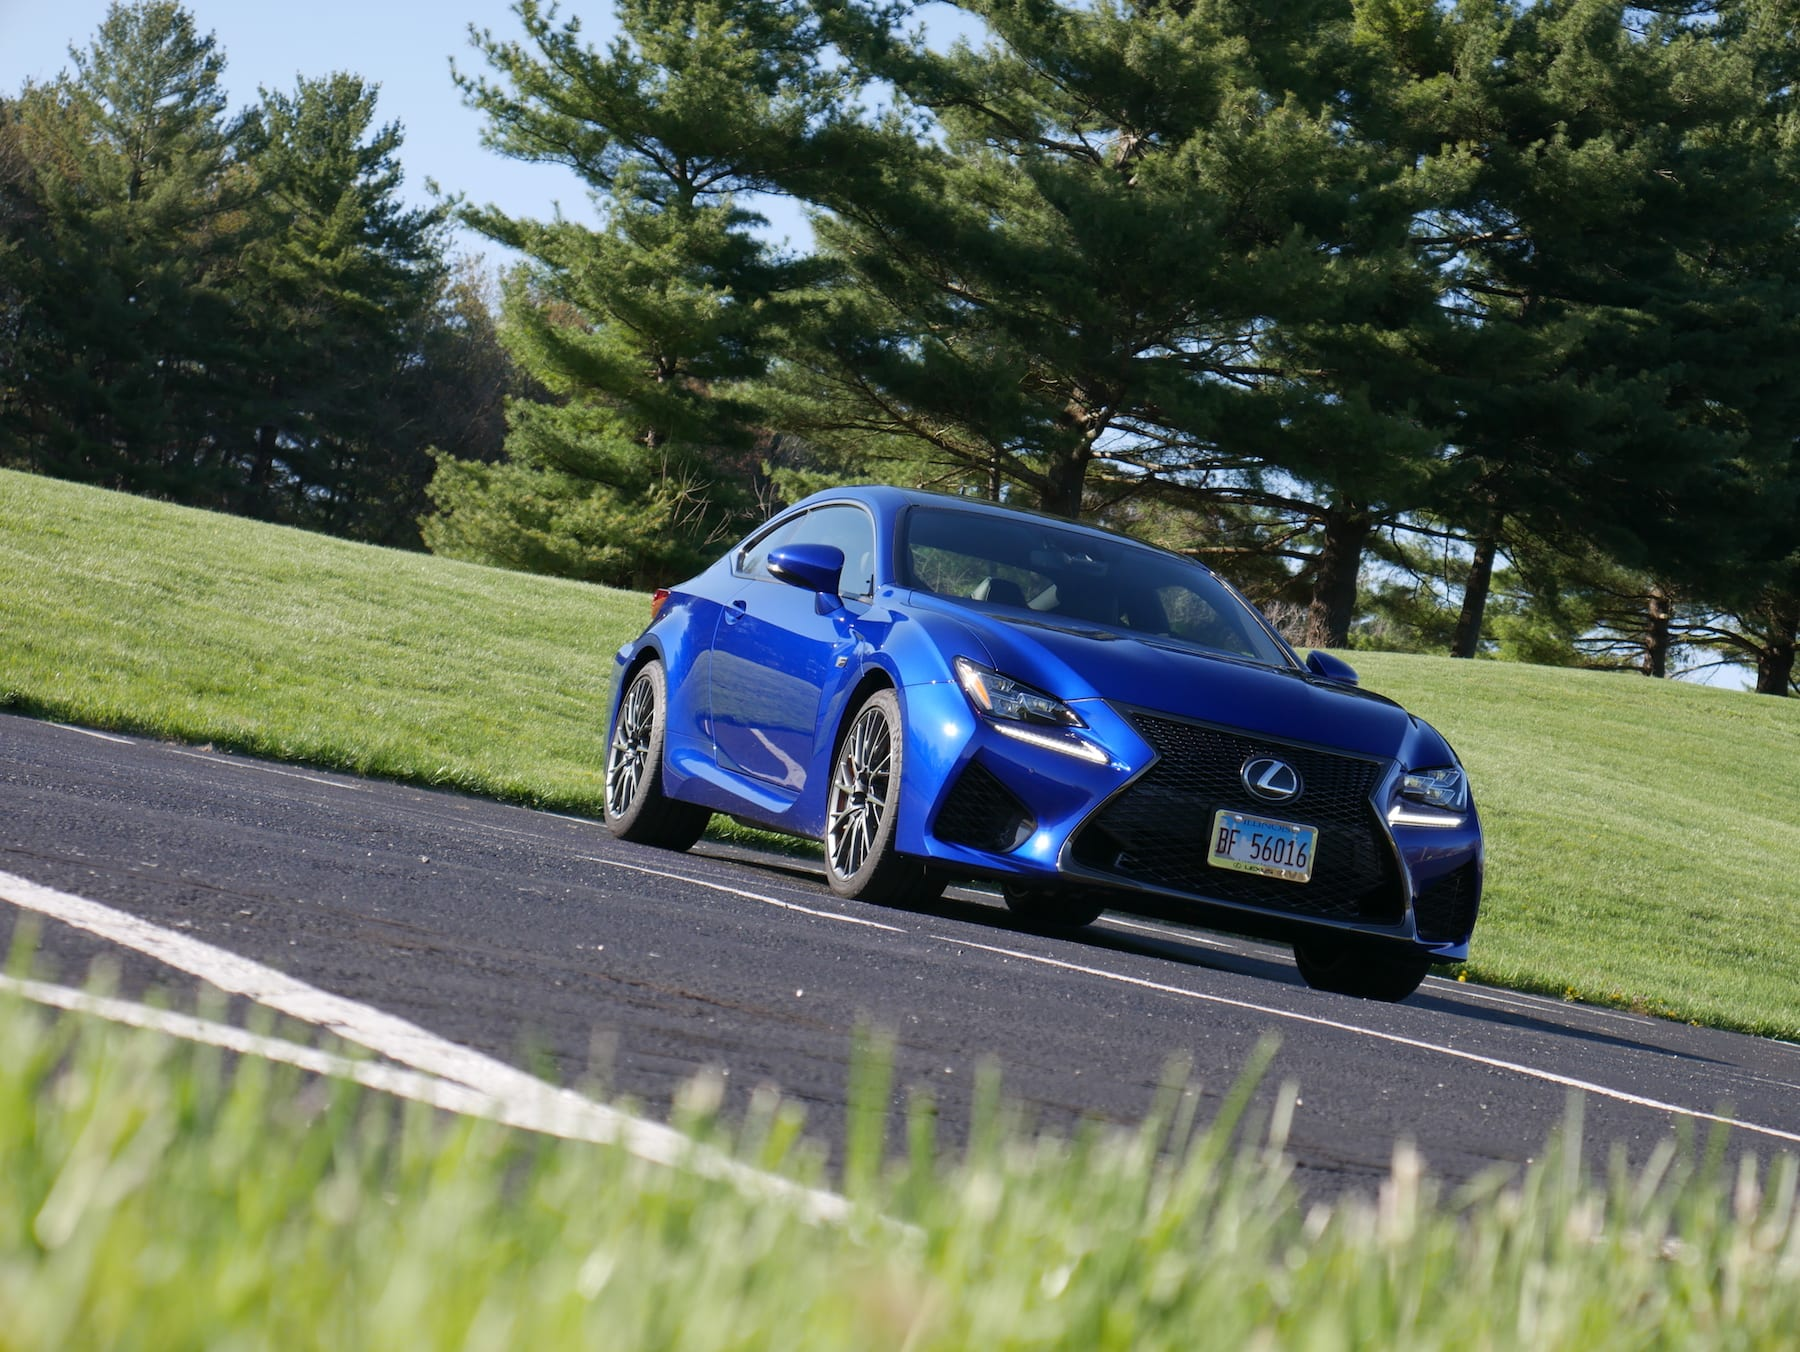 2019 Lexus RC F low front view